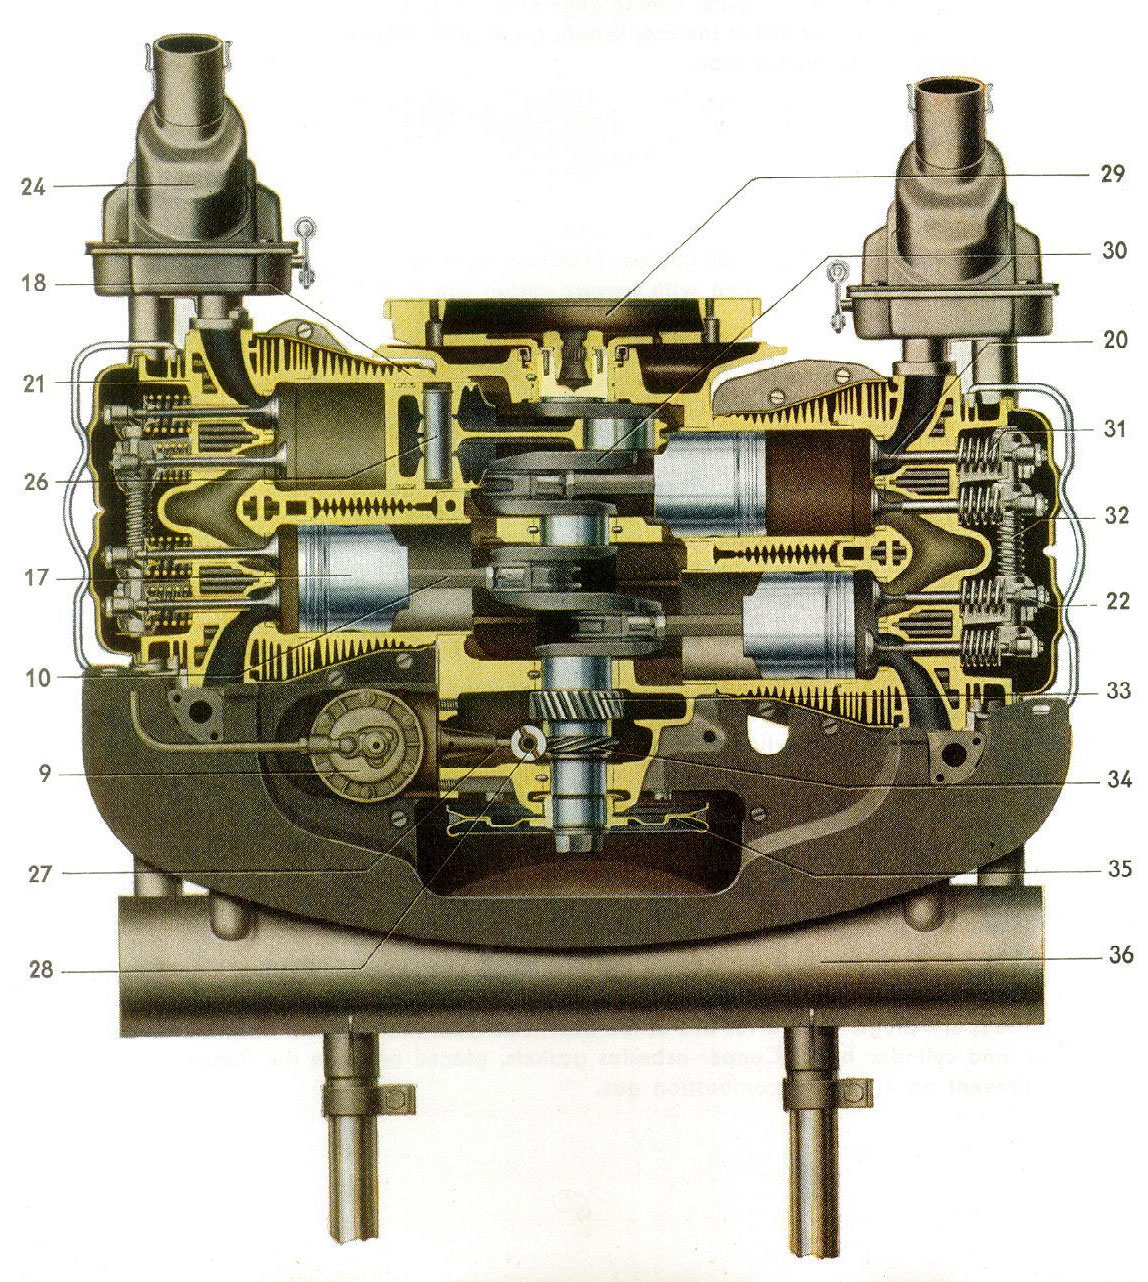 hight resolution of 1978 vw bus engine diagram wiring diagrams u2022 vw van porsche engine 78 vw bus engine diagram